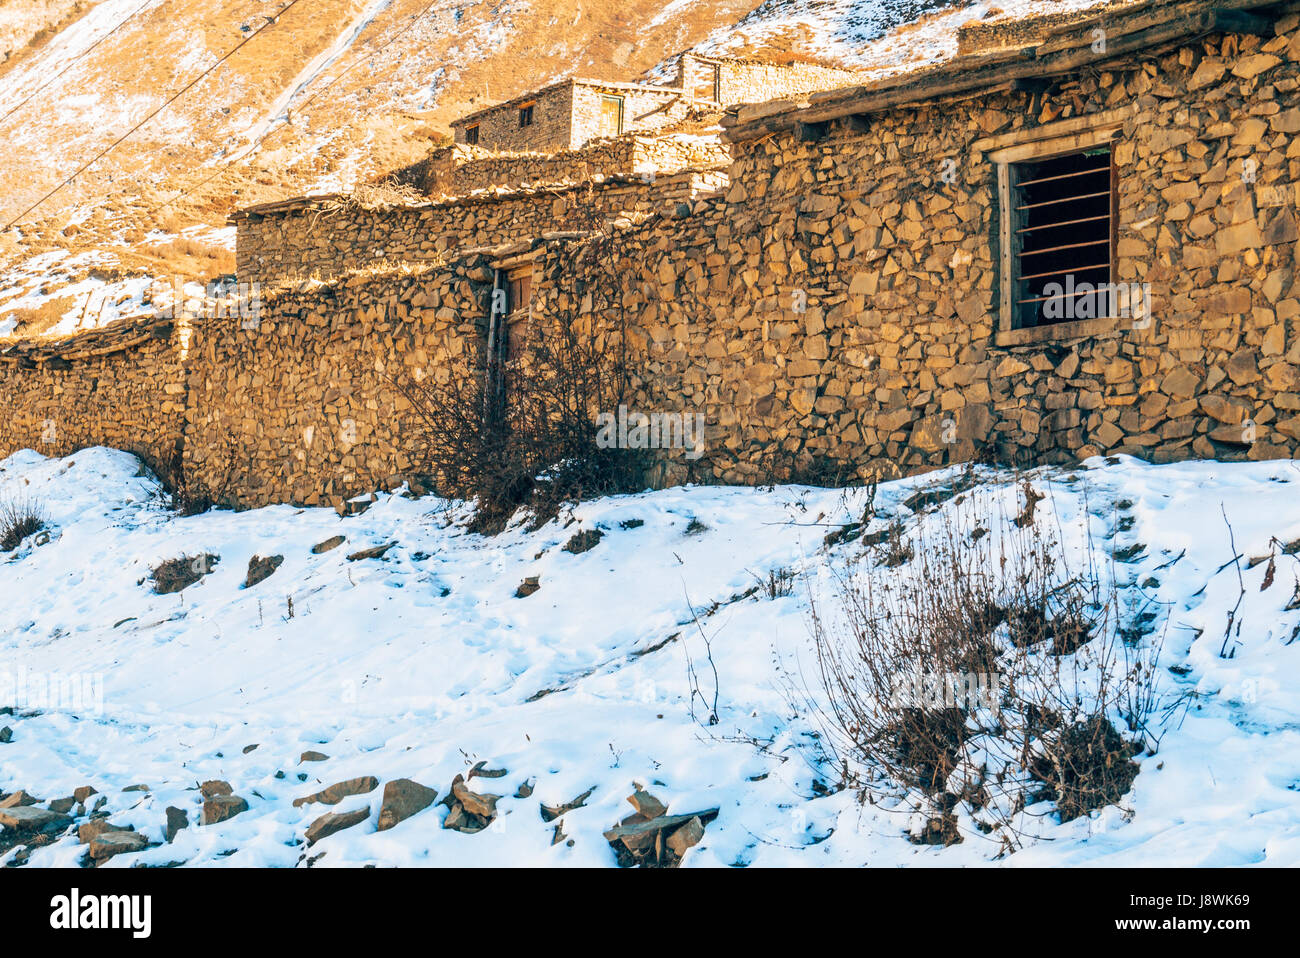 Mud brick houses with snow covered ground in the Himalayan mountains of Nepal. - Stock Image